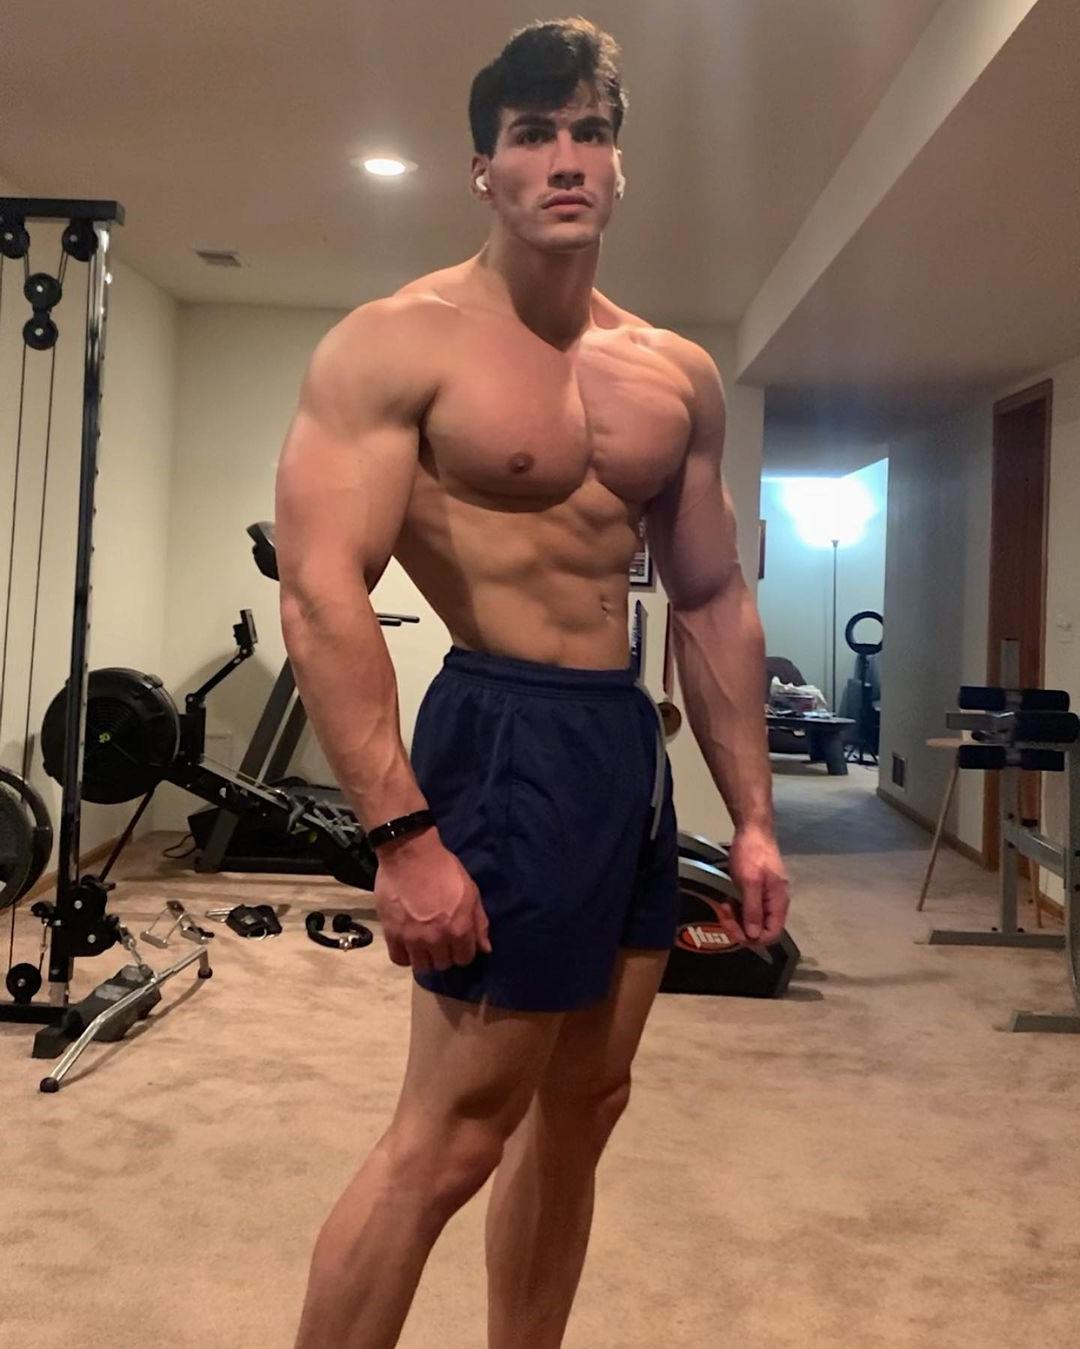 sexy-male-tiktokers-logan-foote-hot-muscular-gym-dude-young-beefcake